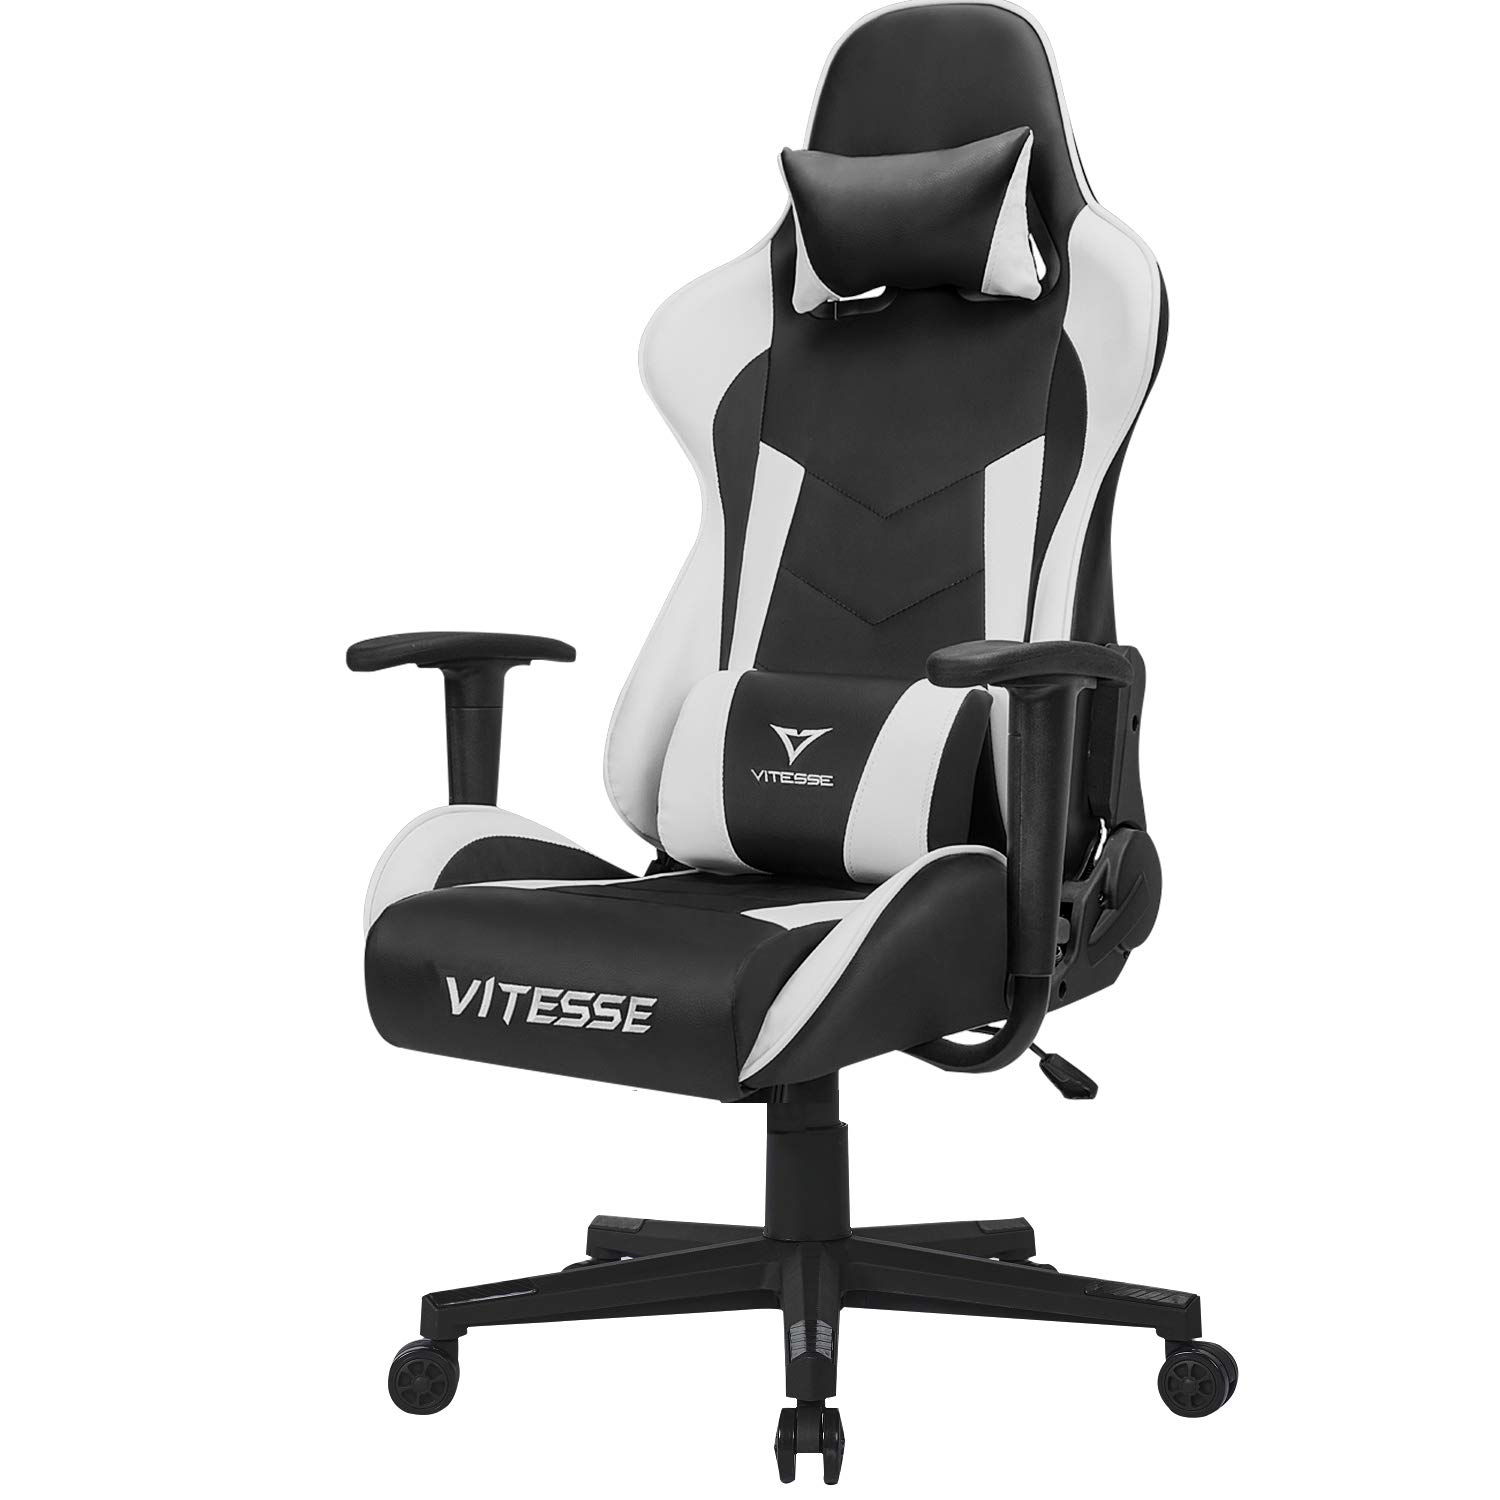 Vitesse Computer Gaming Chair Racing Style High-Back PC Chair Ergonomic Office Desk Chair Swivel E-Sports Leather Chair with Lumbar Support and ...  sc 1 st  Amazon.com & Amazon.com: Vitesse Computer Gaming Chair Racing Style High-Back PC ...